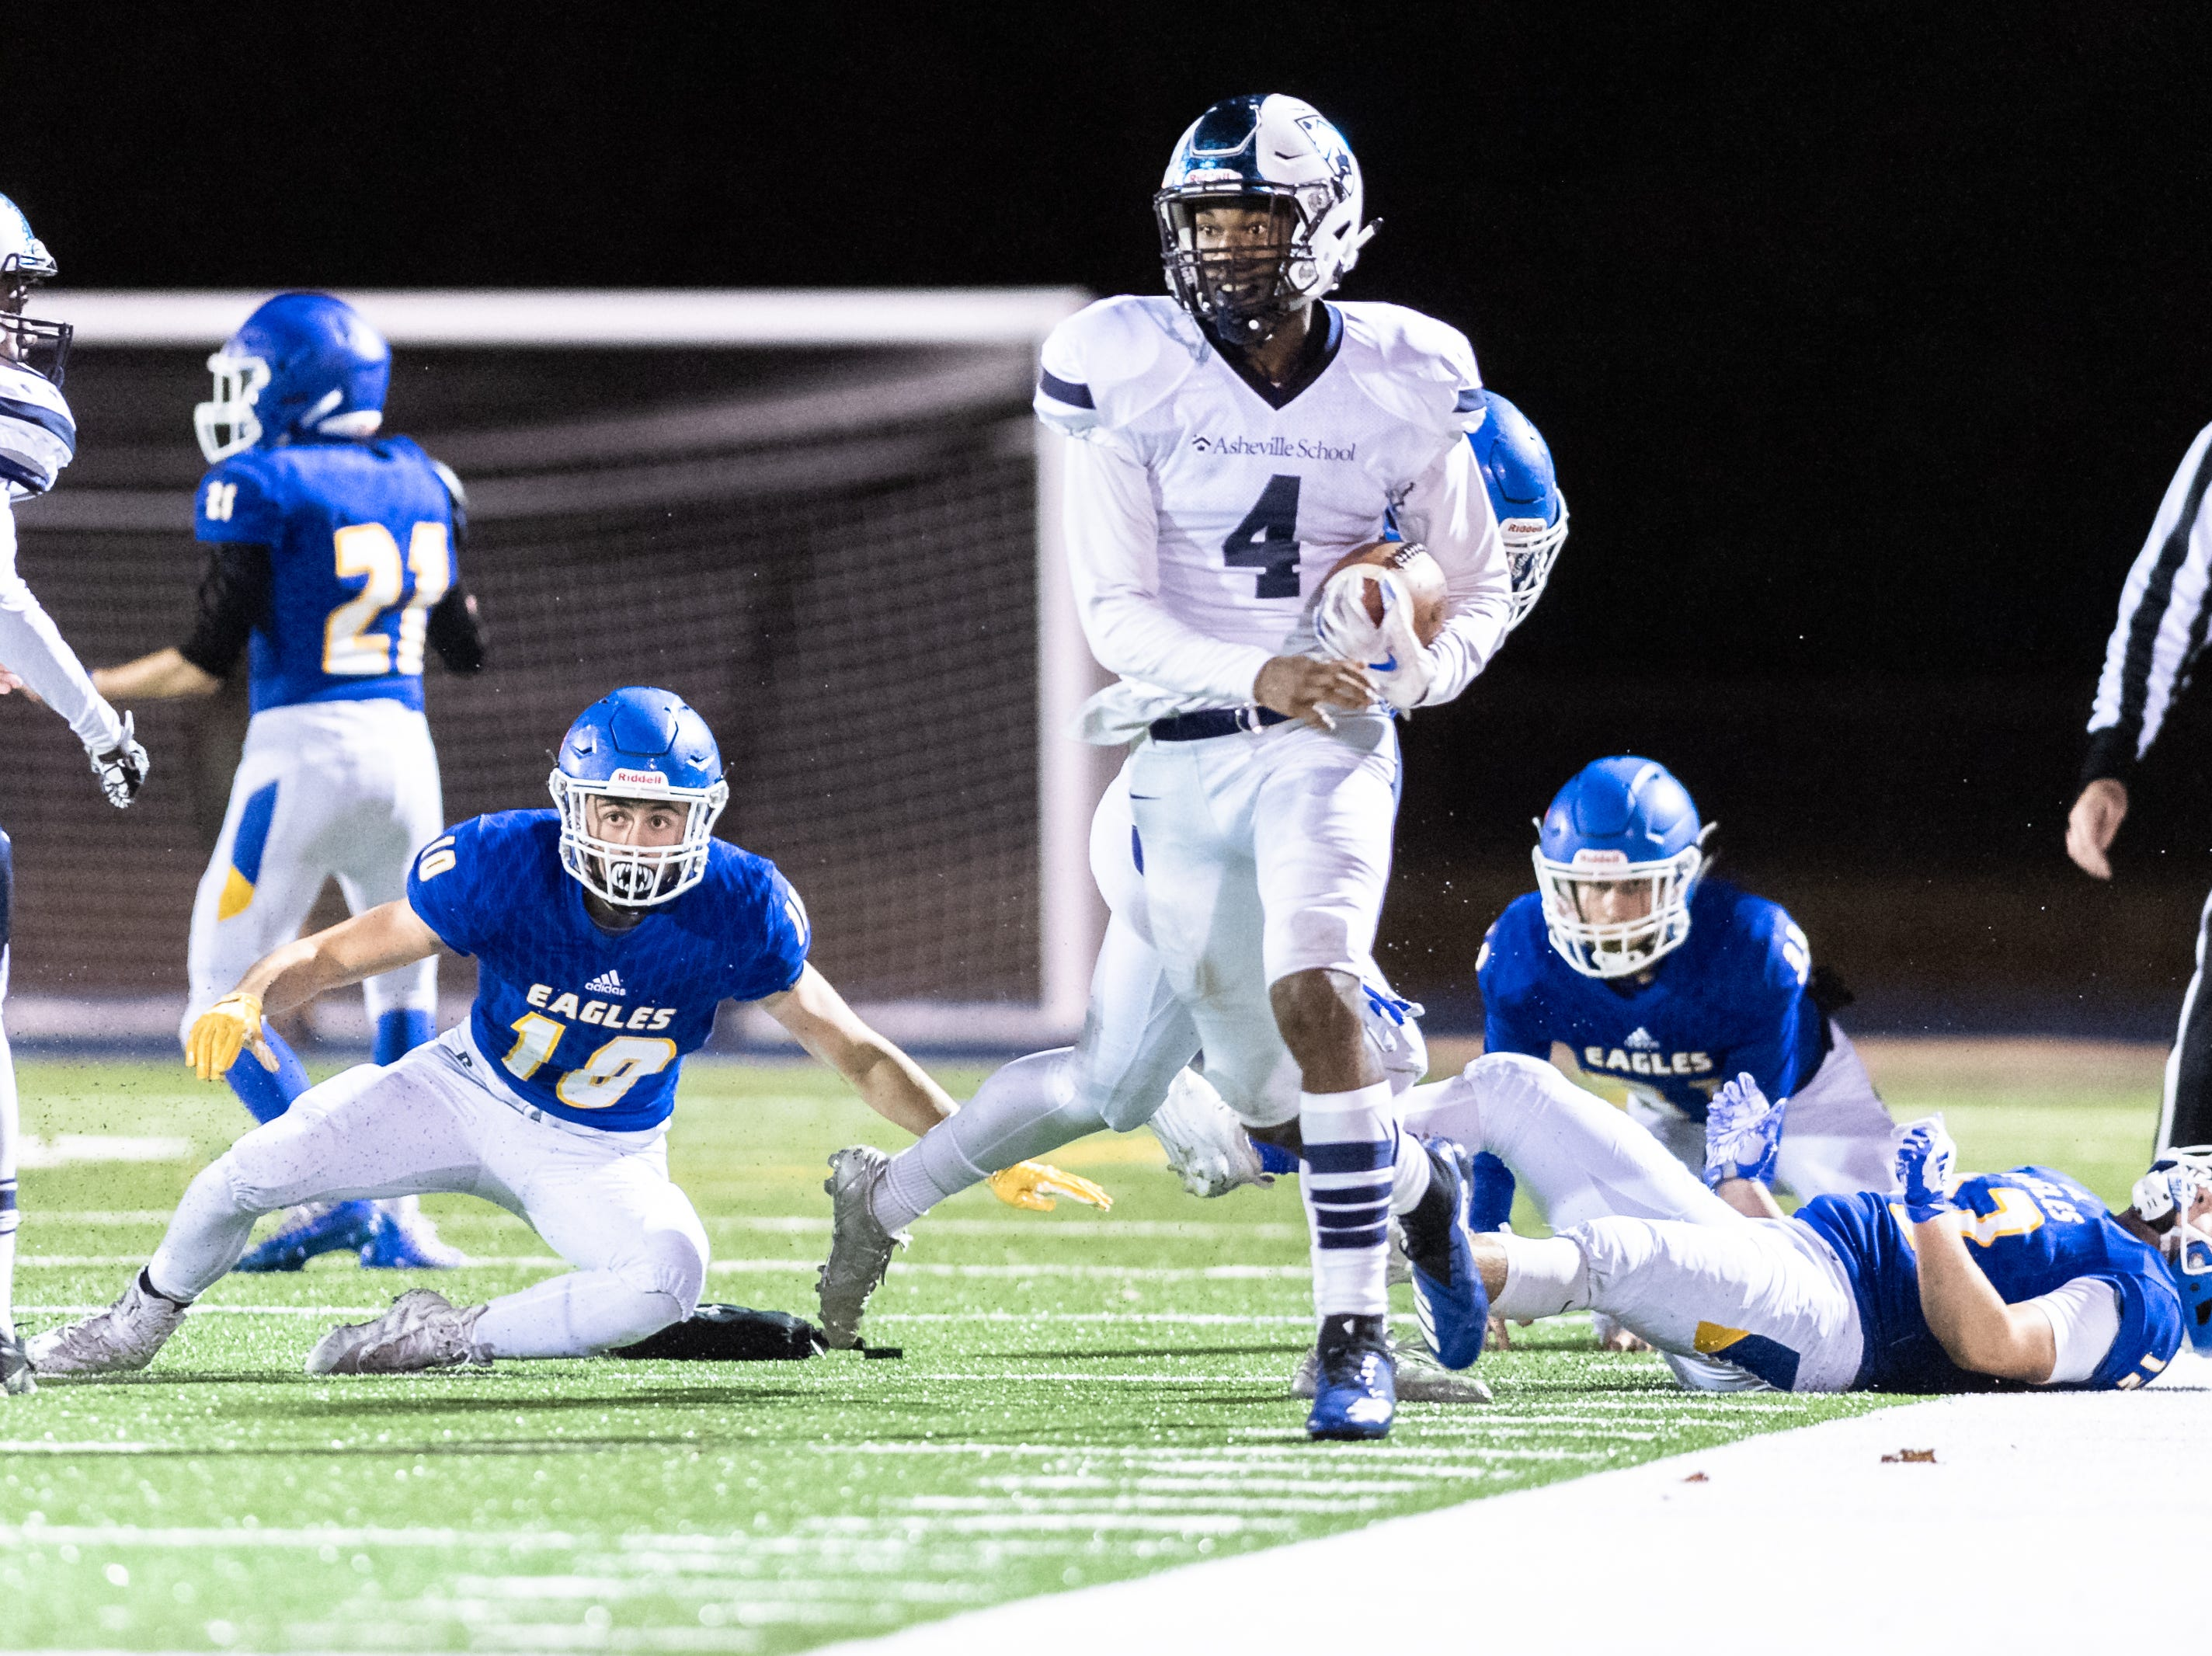 The Asheville School football team hosted Southlake Christian for their second round semifinals Friday night football game Nov. 9, 2018.